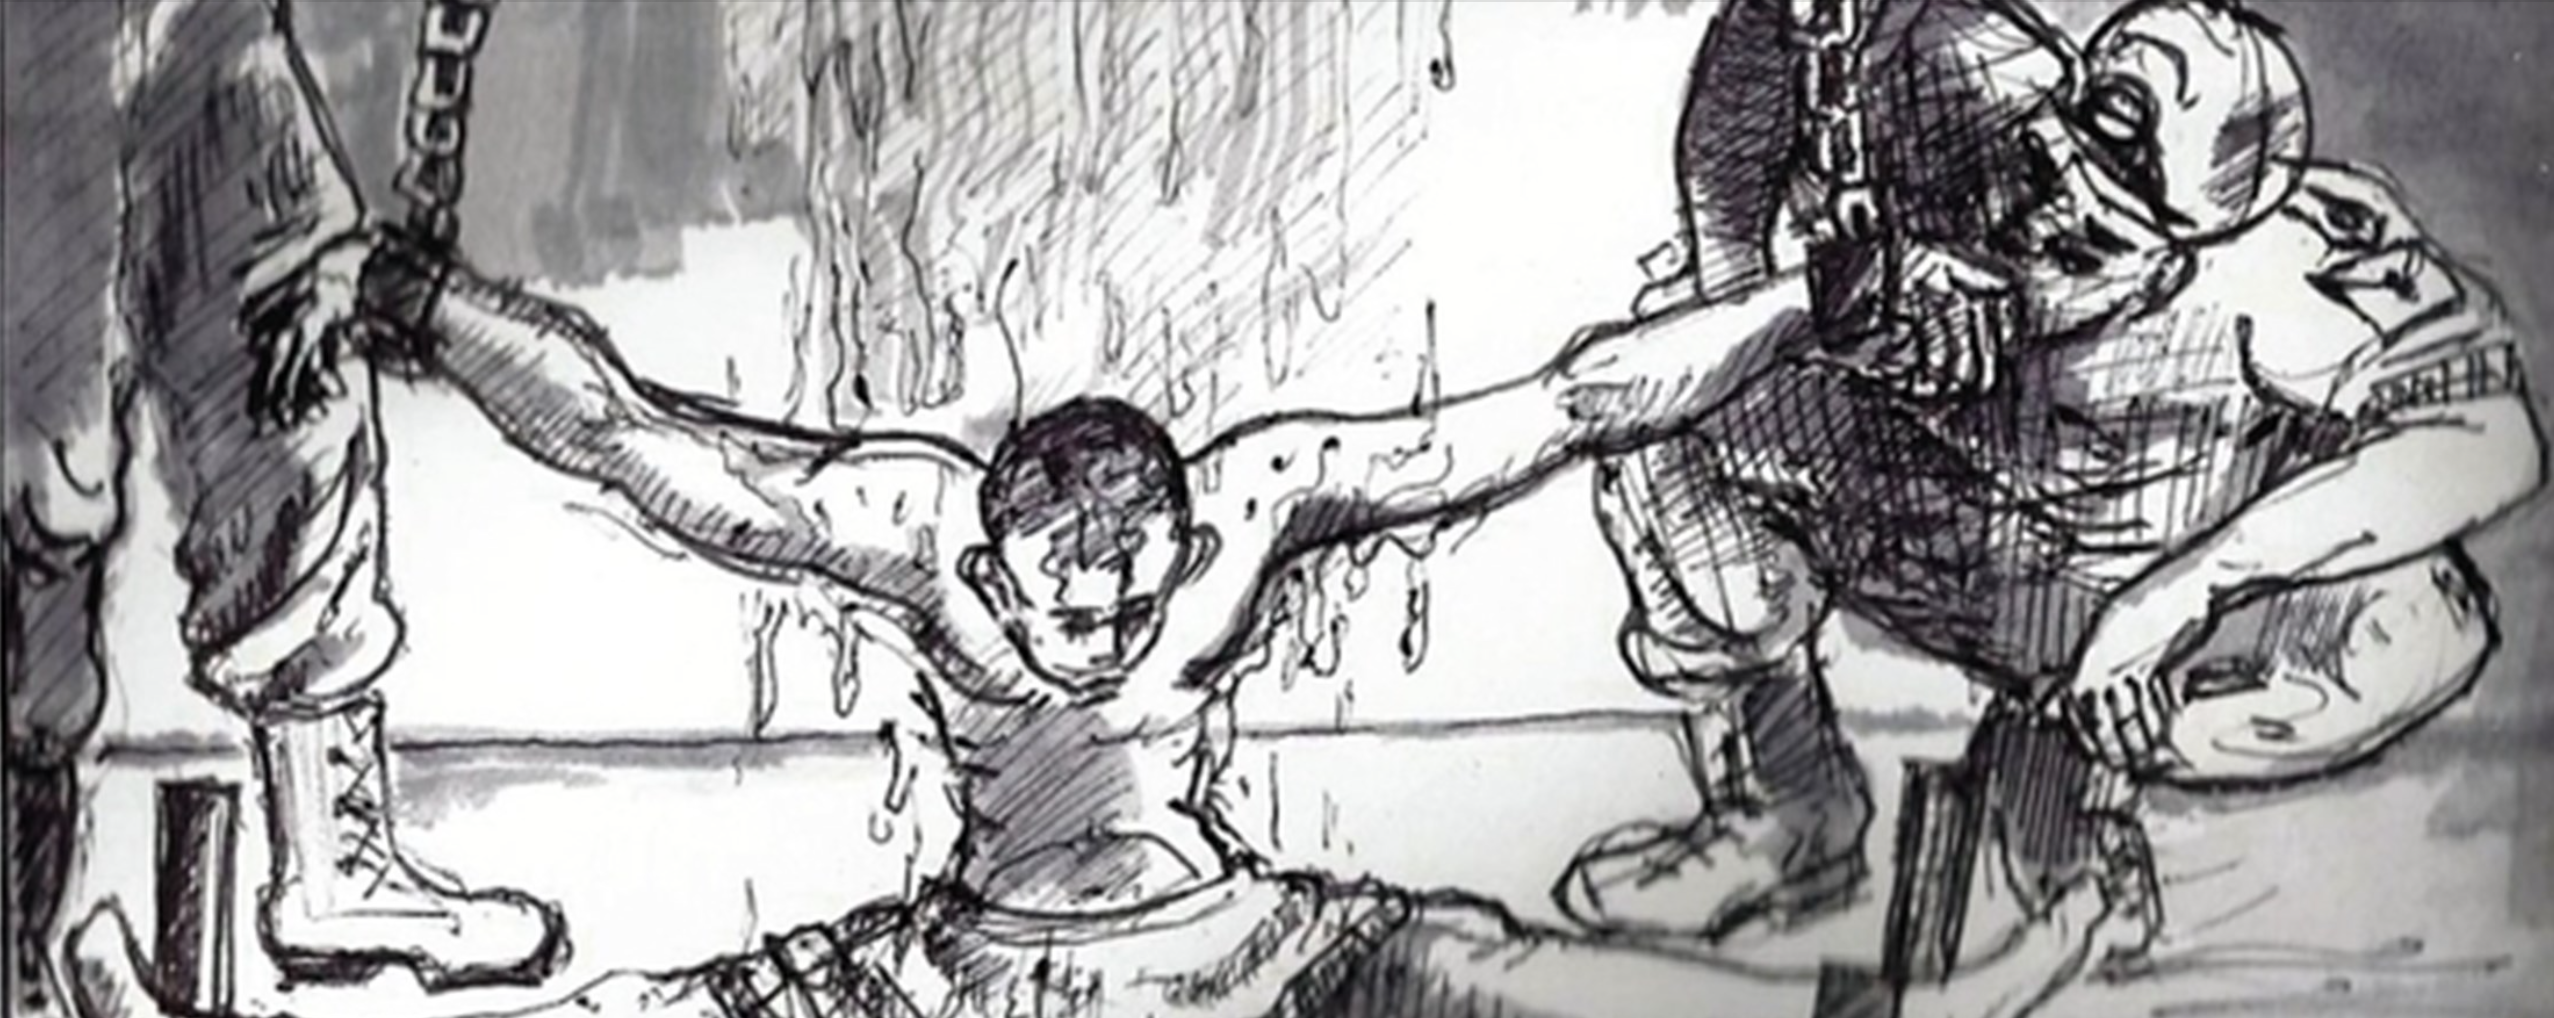 waterboarding is torture essay 2008] on waterboarding 3 waterboarding is a viscerally effective, coercive interrogation technique designed to overcome the will of the individual it causes severe physical suffering in the form of reflexive choking, gagging.